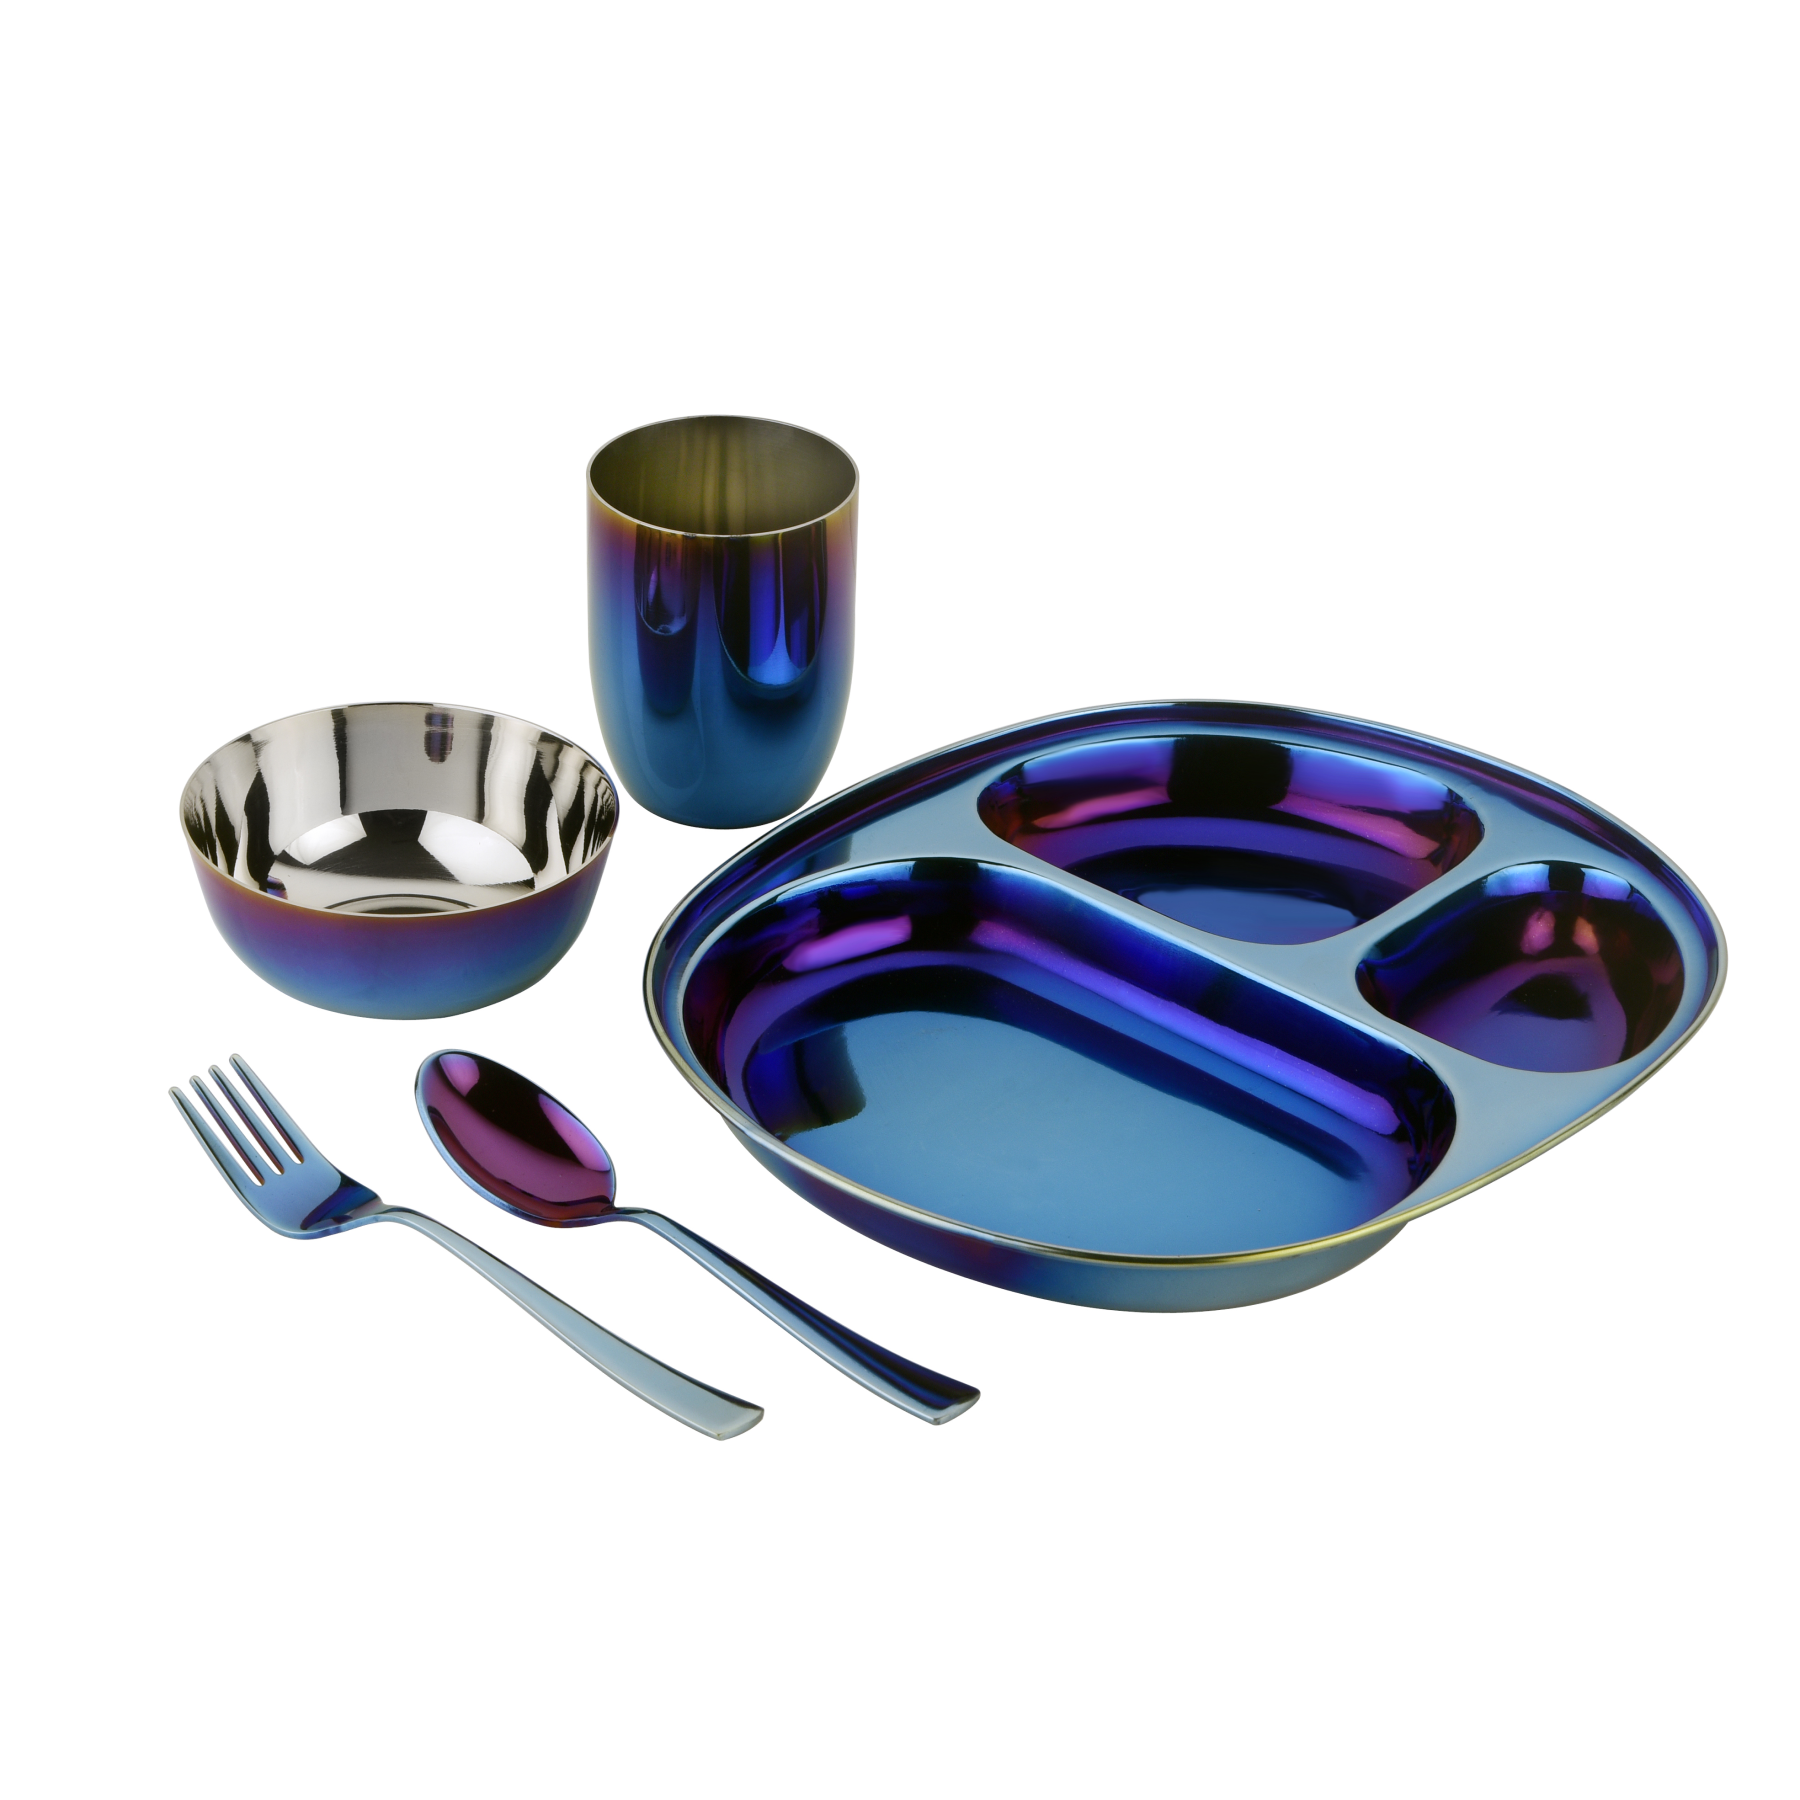 Iridescent blue compartment plate bowl cup spoon and fork for children